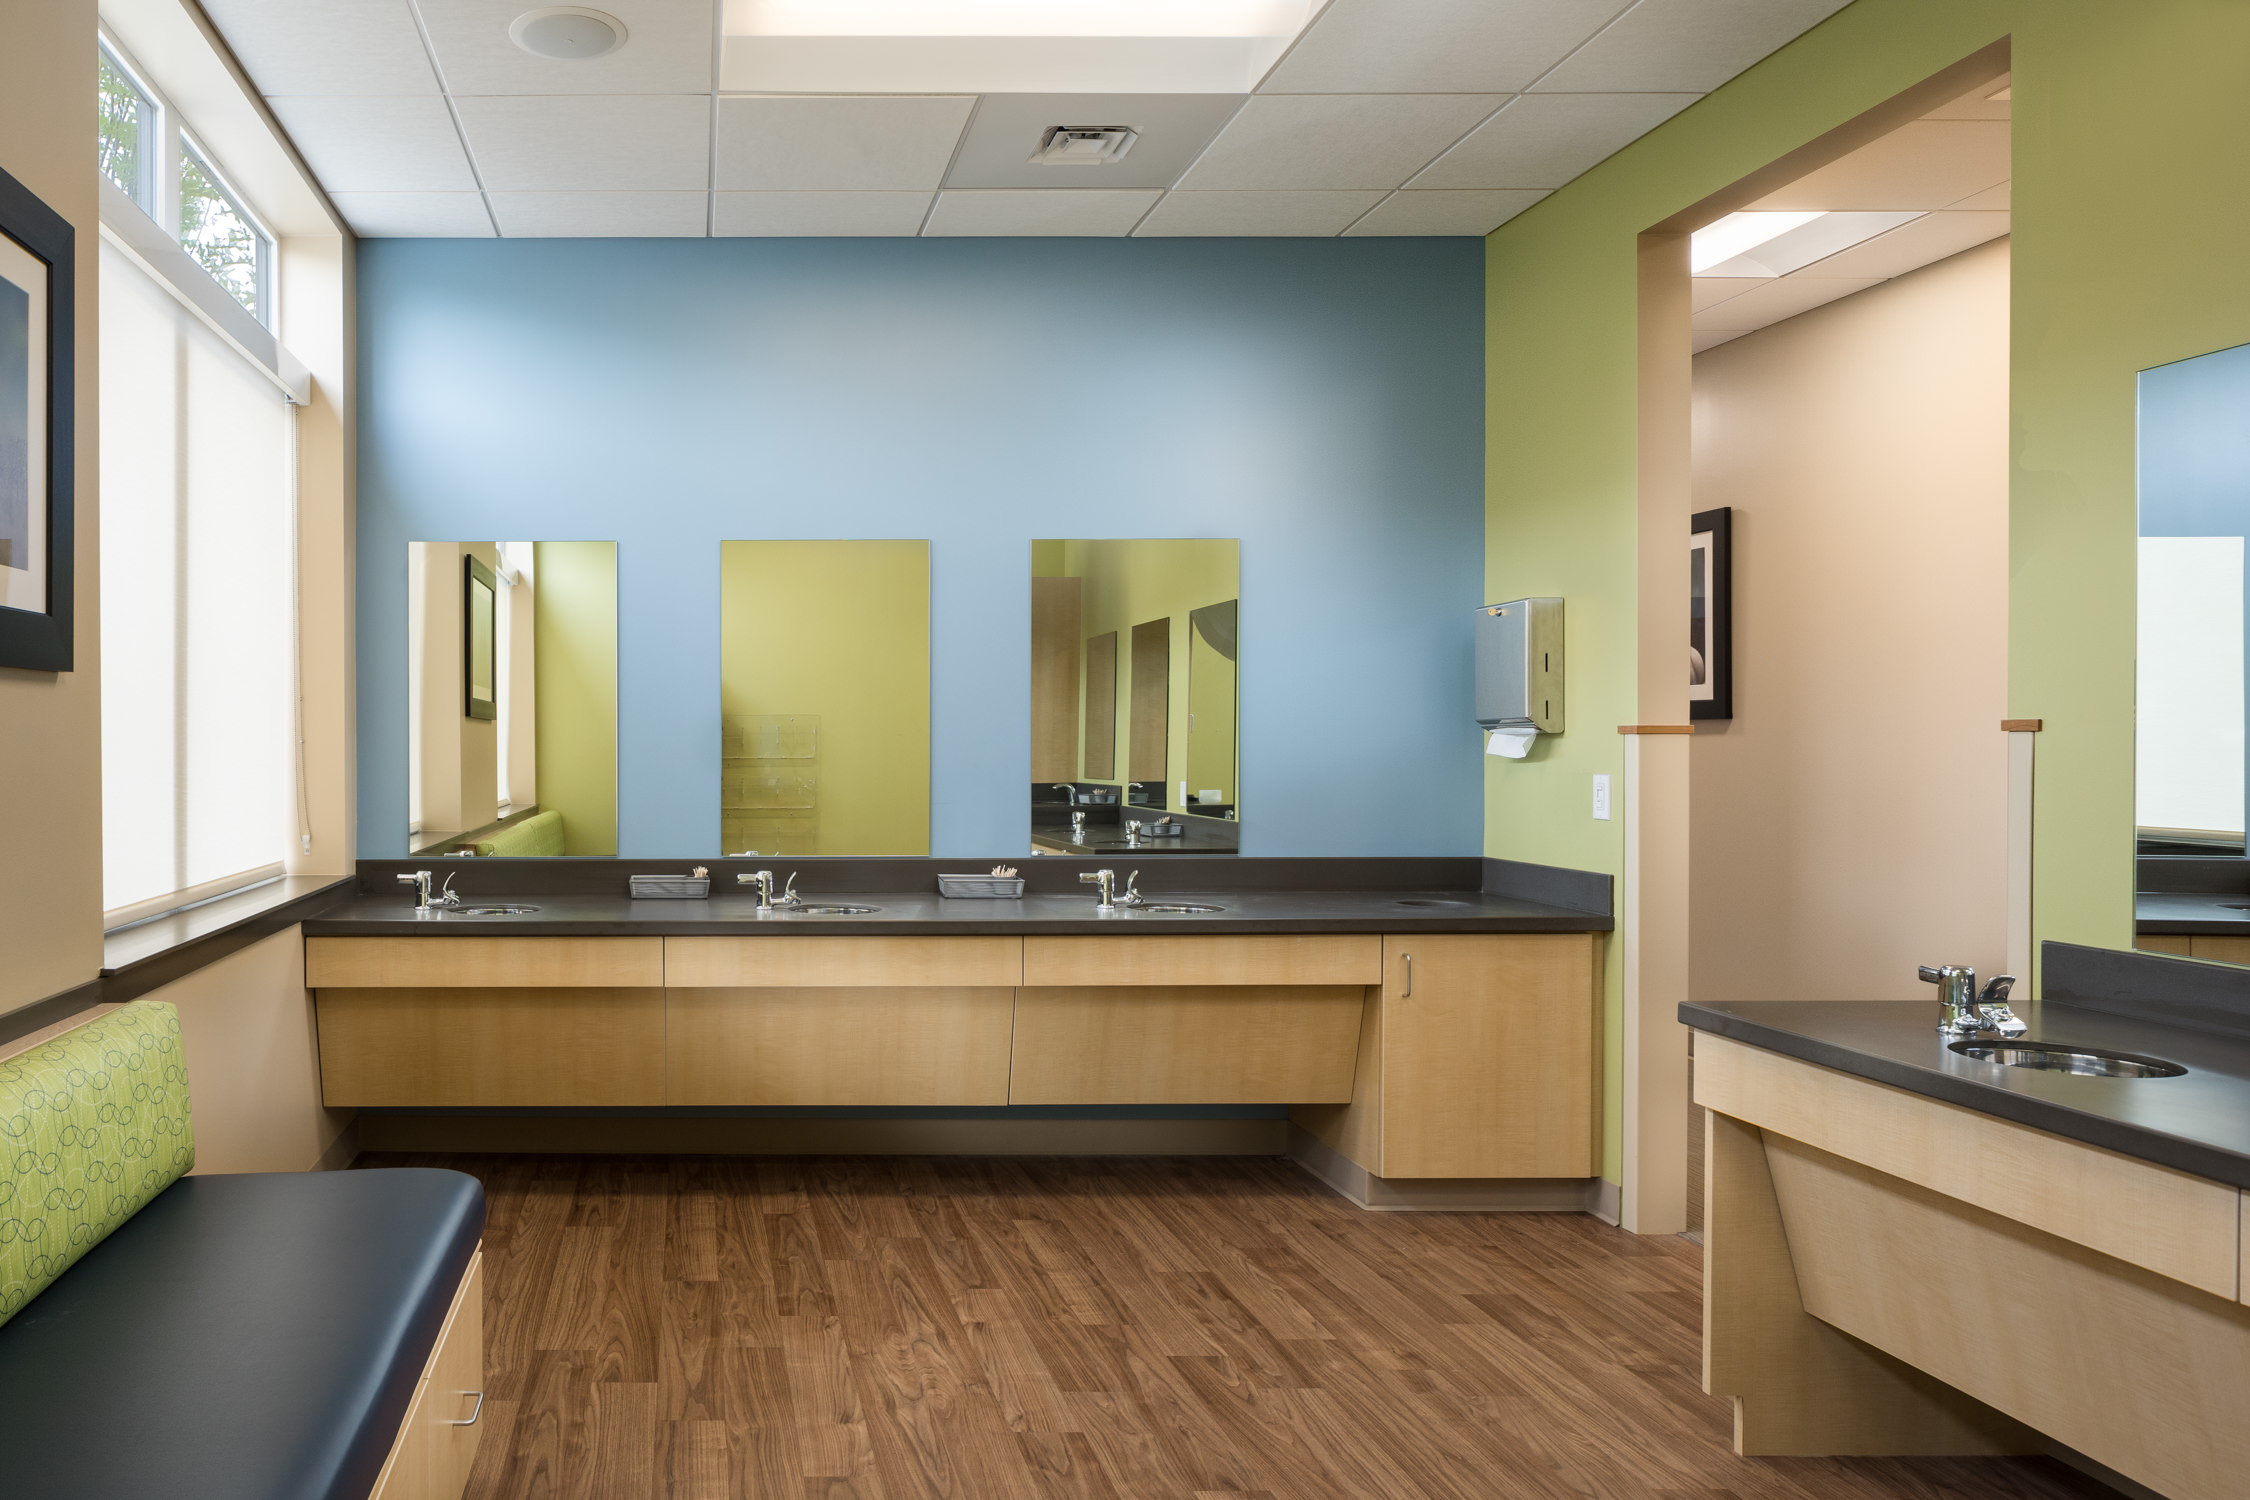 Photo of the children's brushing room at Timberlane Dental in Essex Vermont by professional photographer Stina Booth